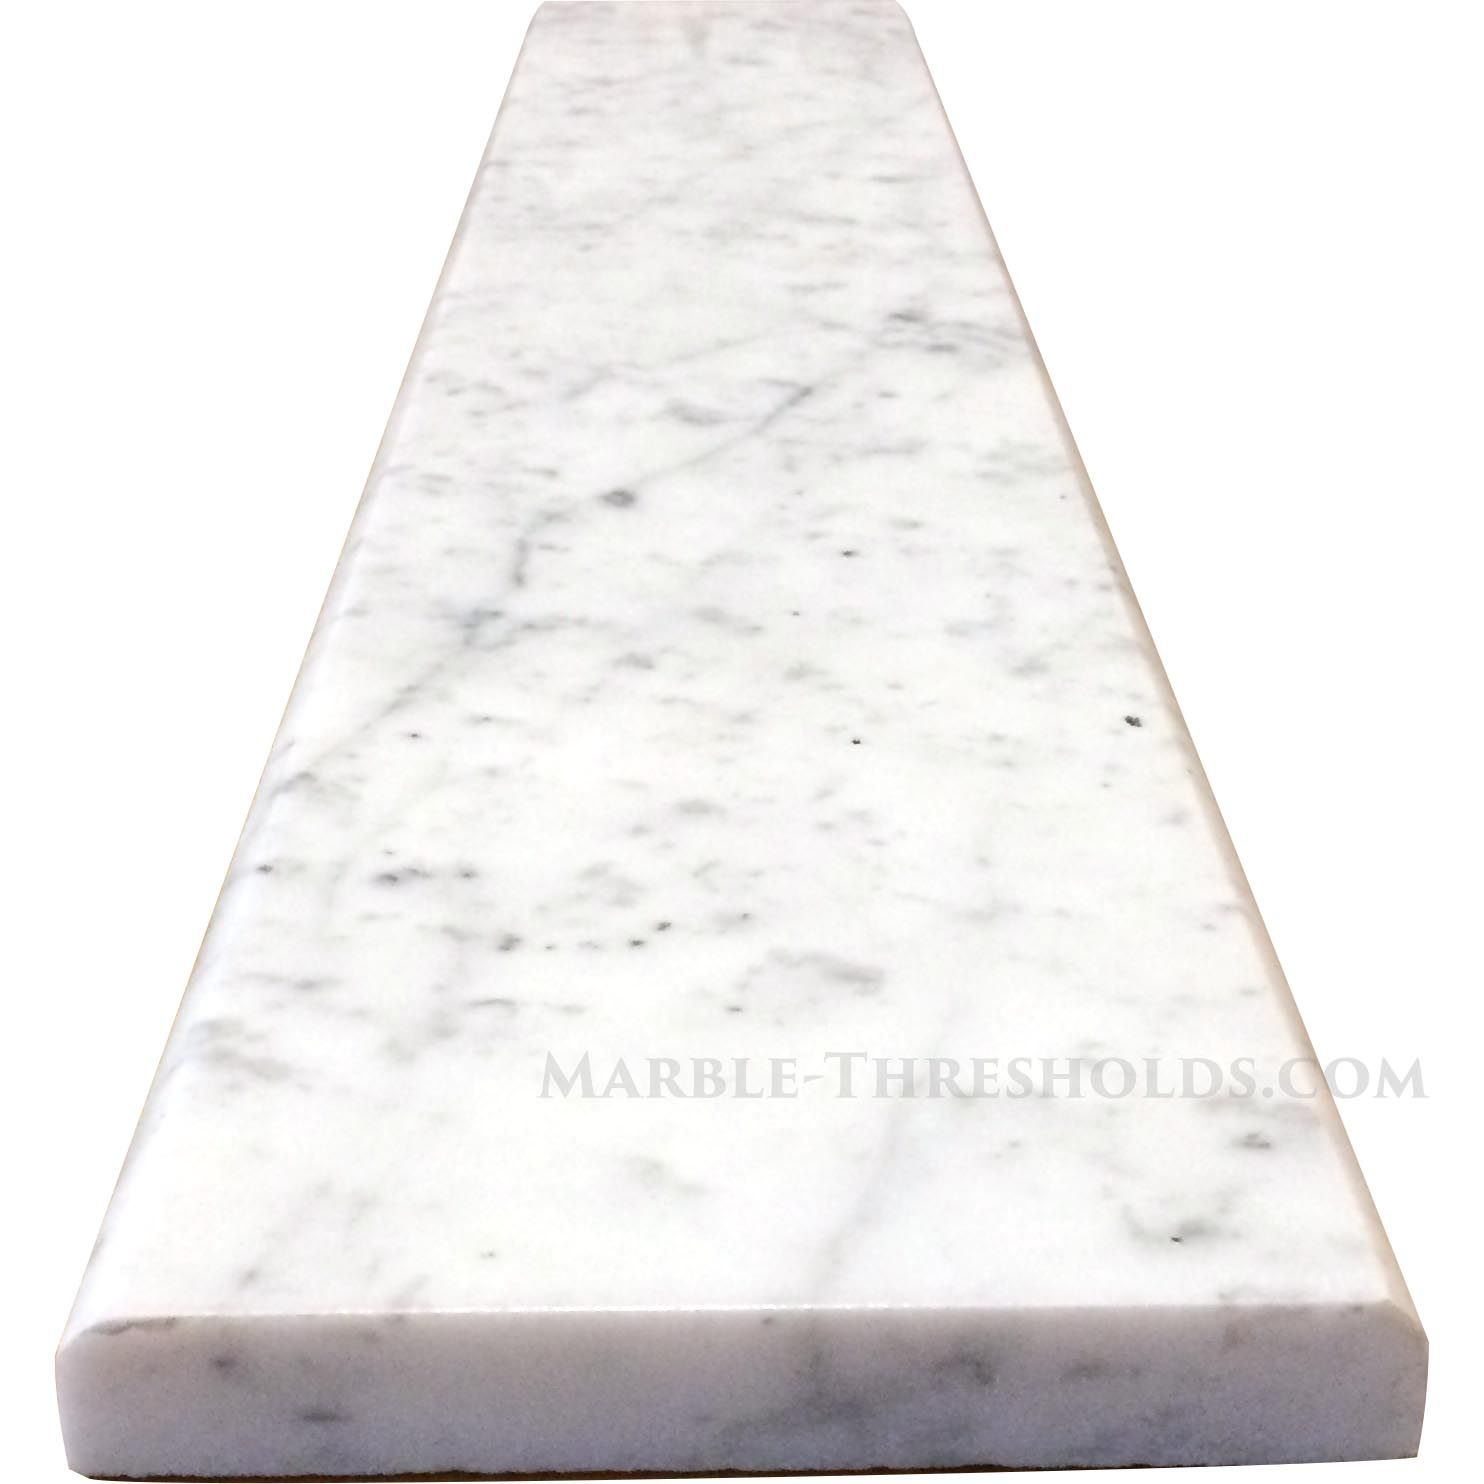 White Carrara Marble Saddles And Door Thresholds Size 30 X 6 X 3 4 Marble Threshold Carrara Marble Marble Polishing